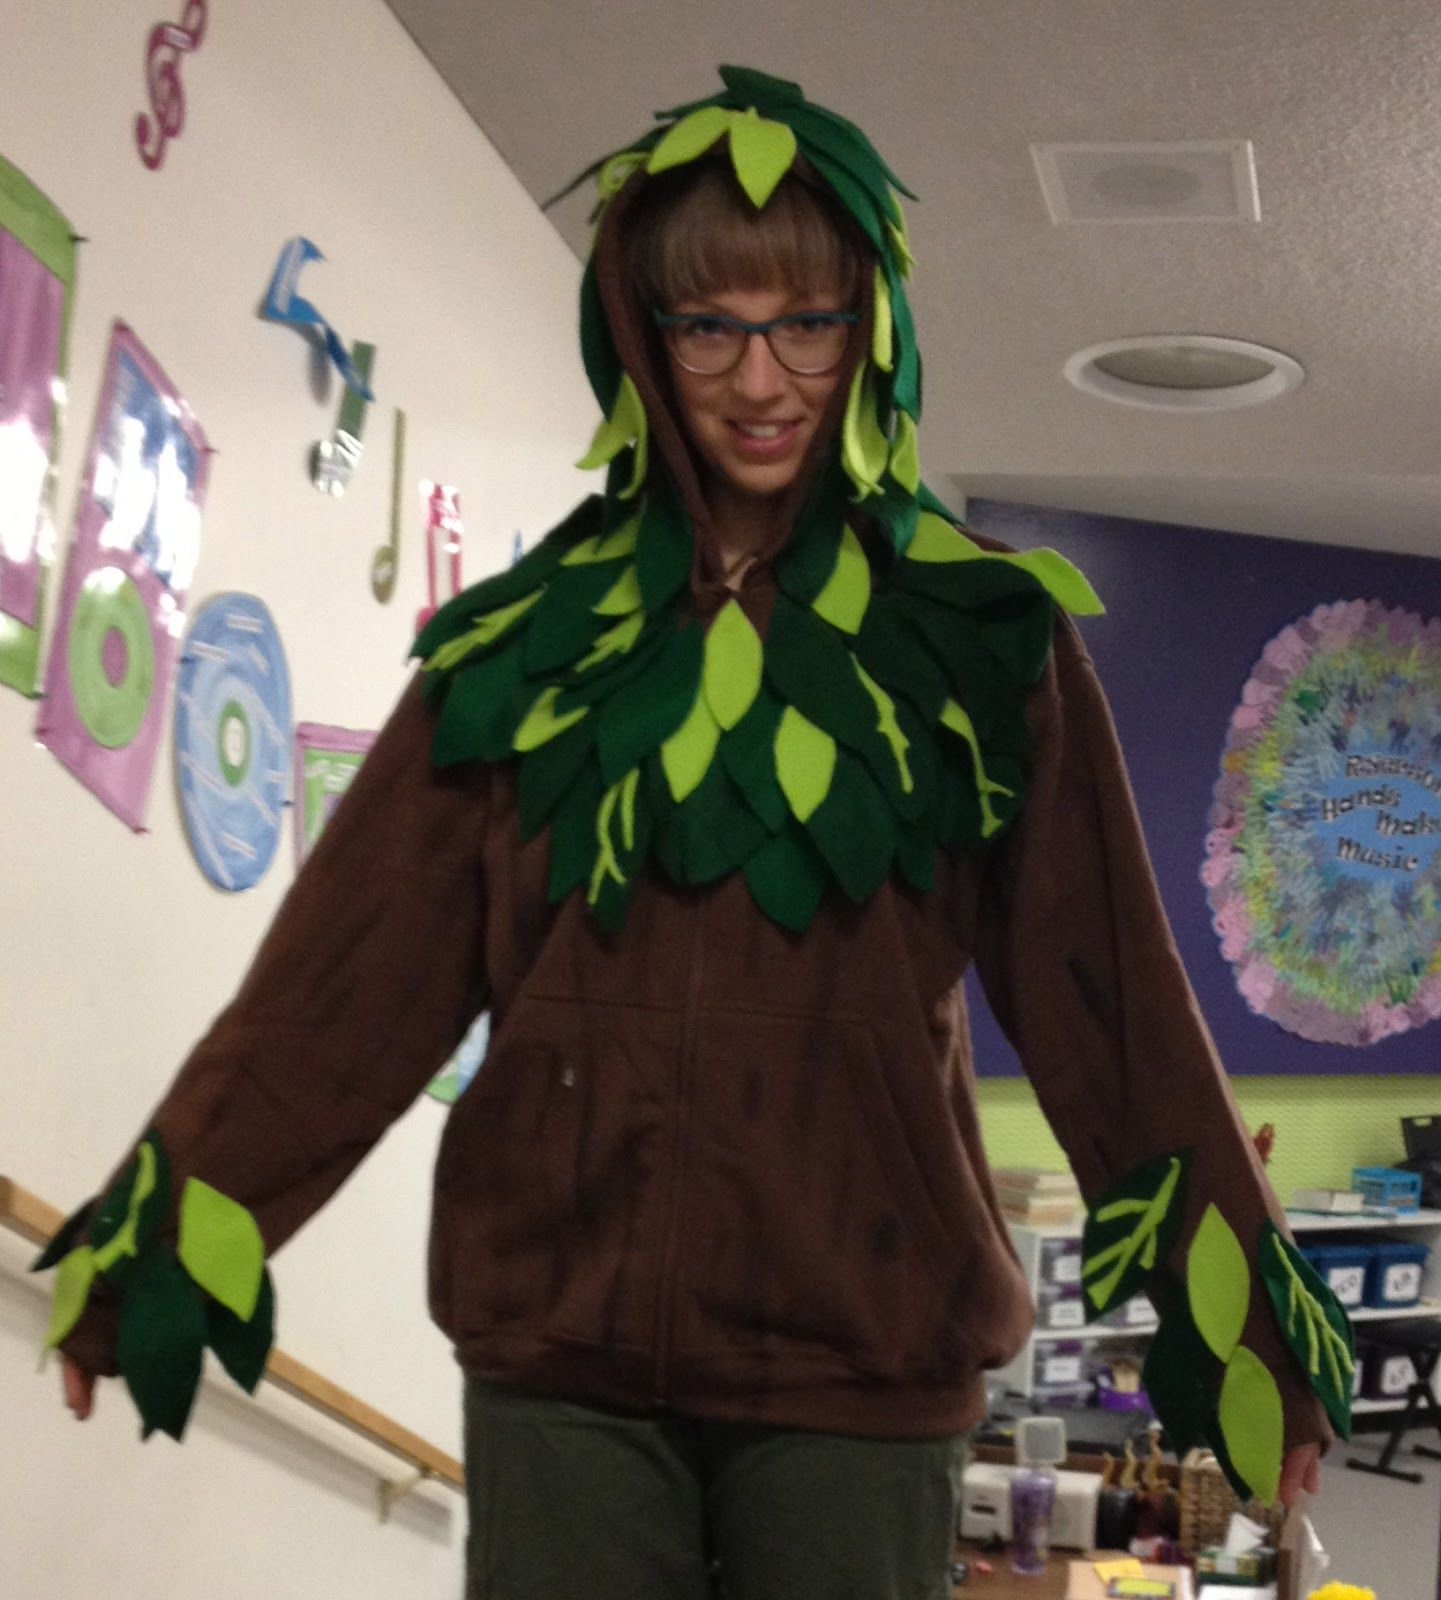 homemade tree costumes for children | Ta da! Here I am in one of ...